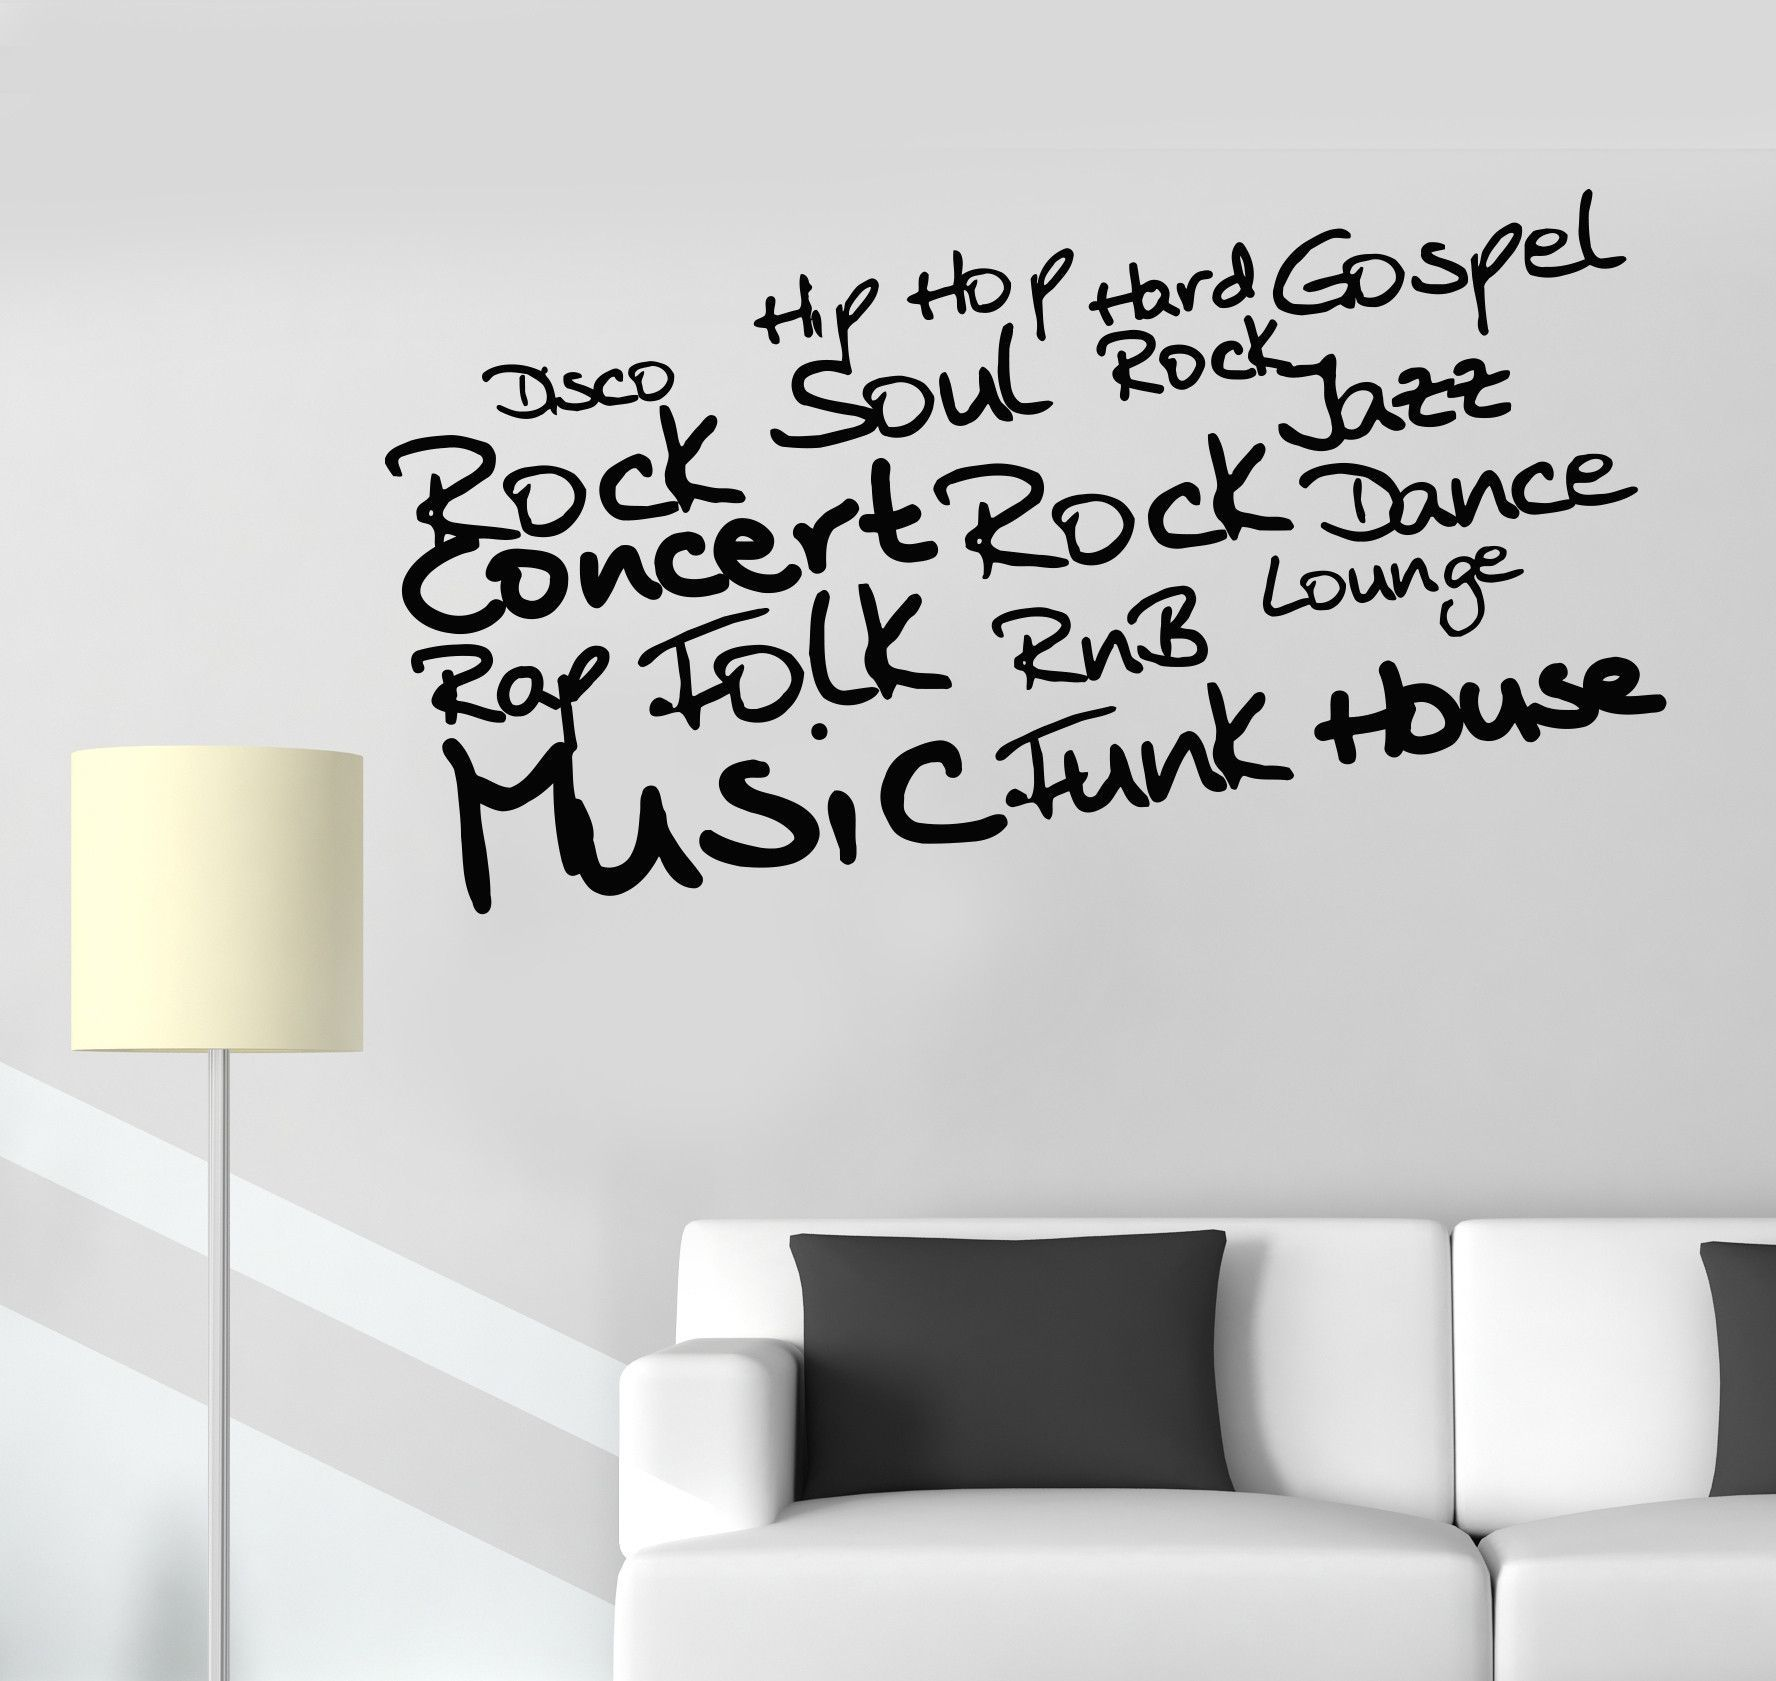 Vinyl Wall Decal Musical Word Art Music Room Decoration Stickers 565ig Music Room Decor Vinyl Wall Decals Vinyl Wall